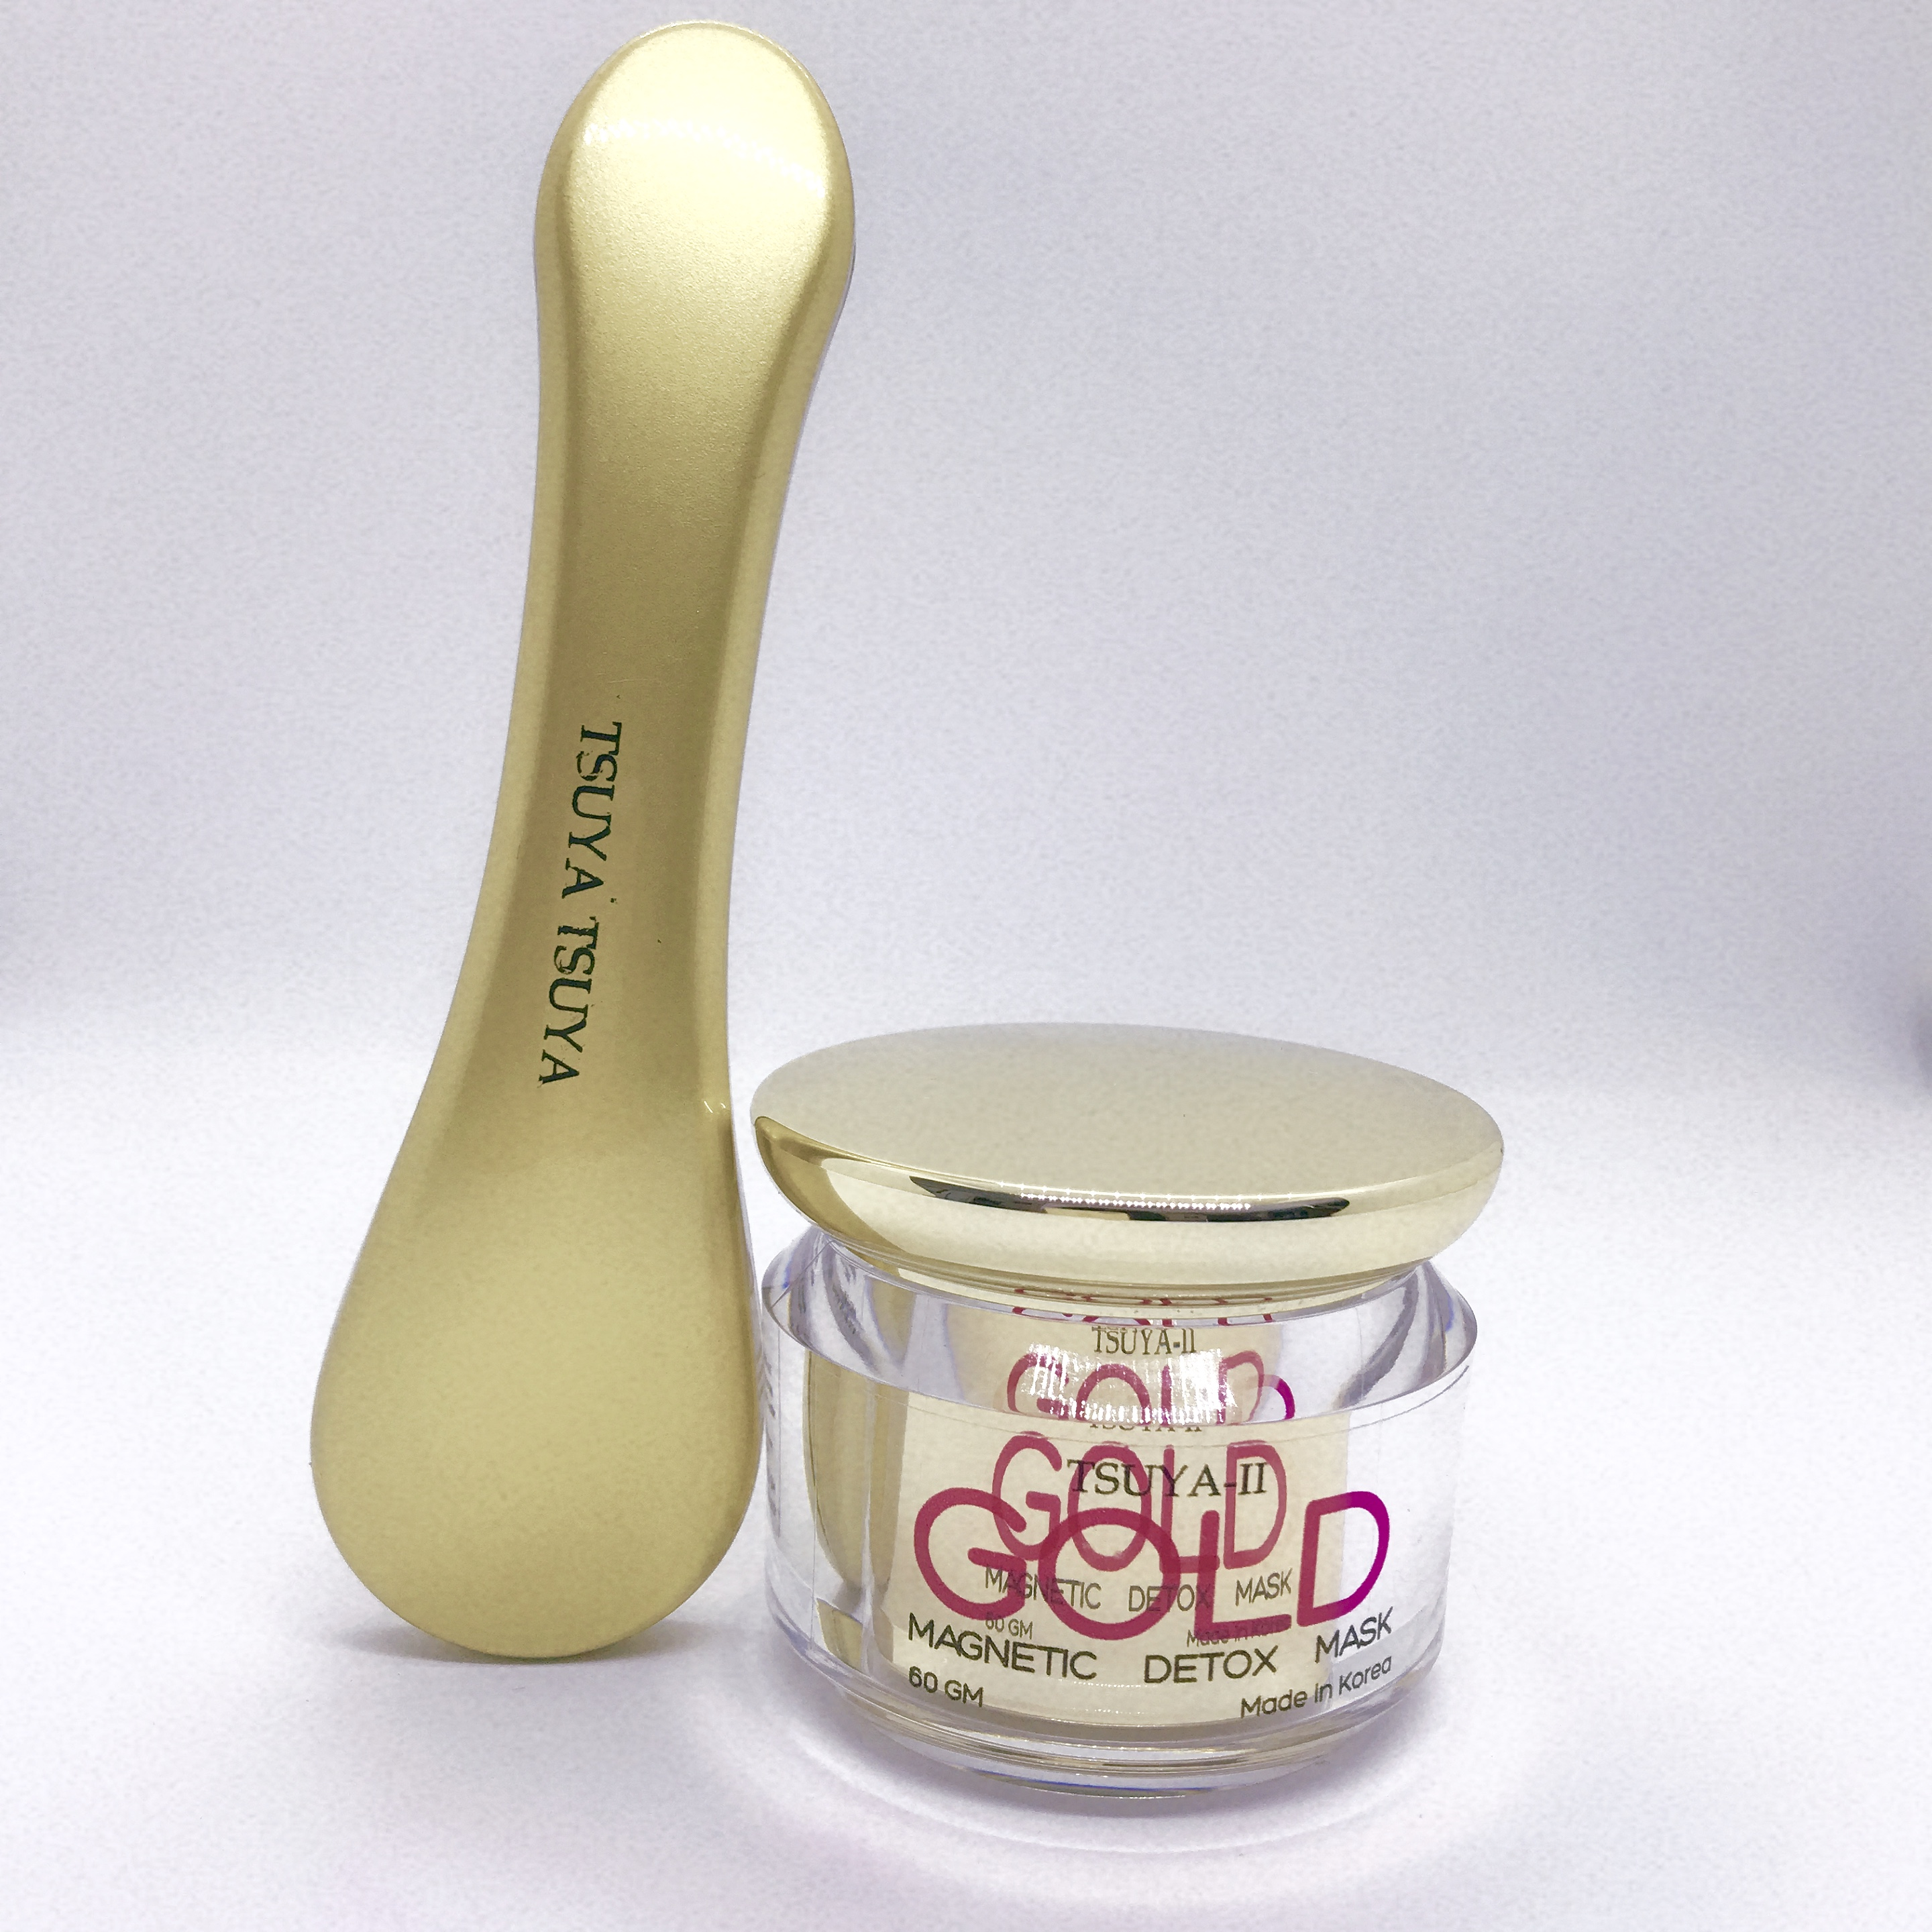 TSUYA II 24K Gold Magnetic Detox Mask